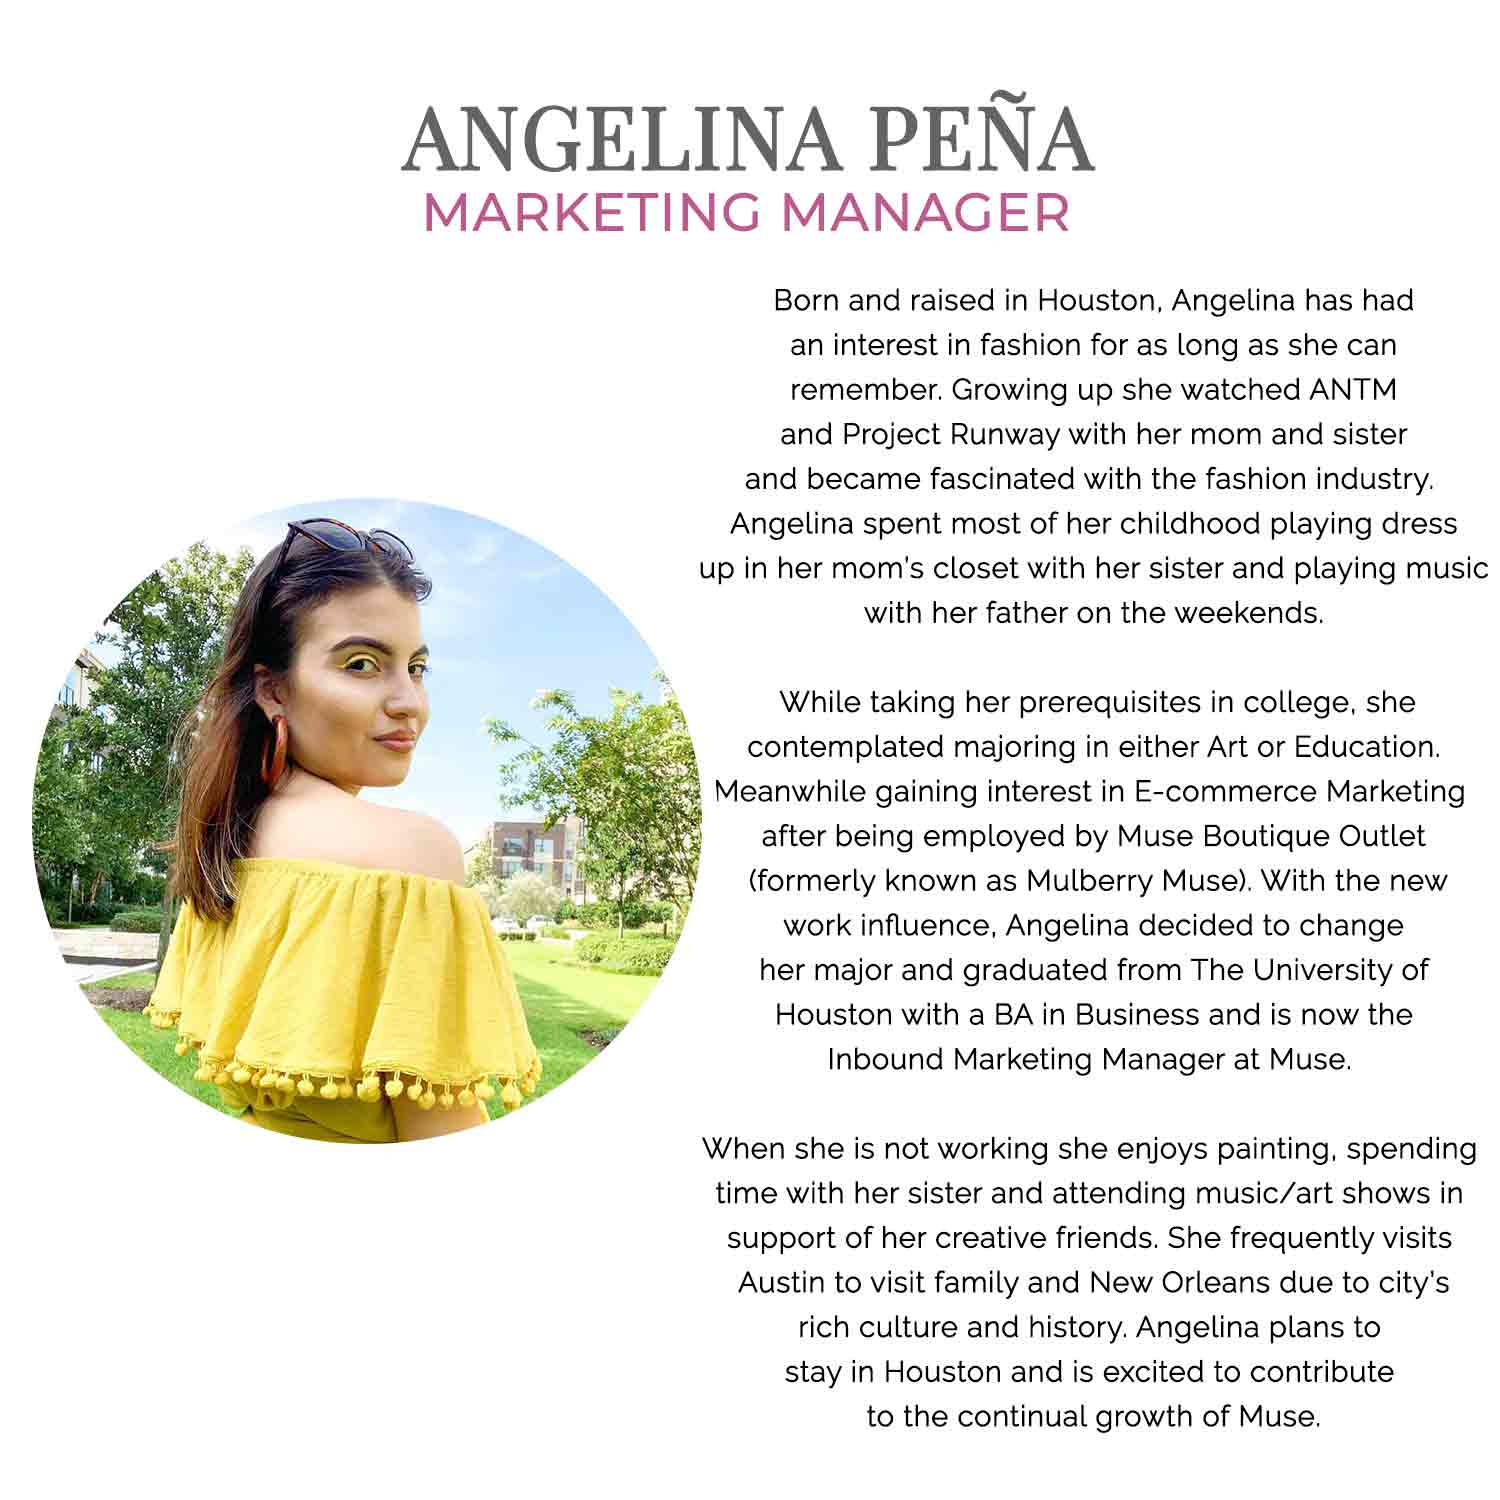 Angelina Jean Pena Marking Manager at Muse Outlet